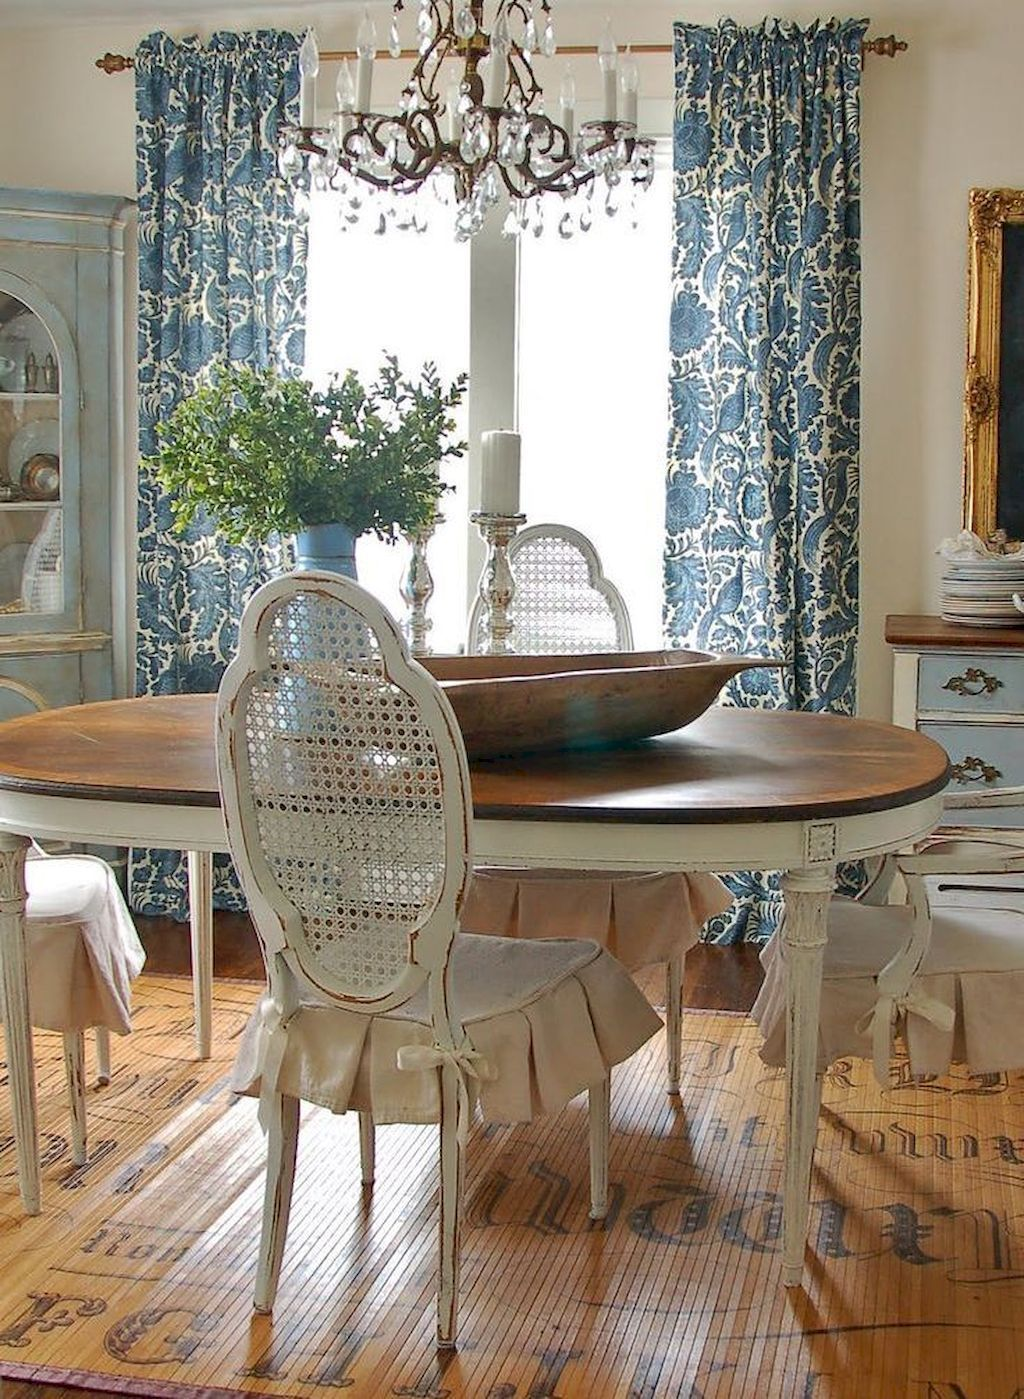 Lasting french country dining room furniture & decor ideas (39 ...